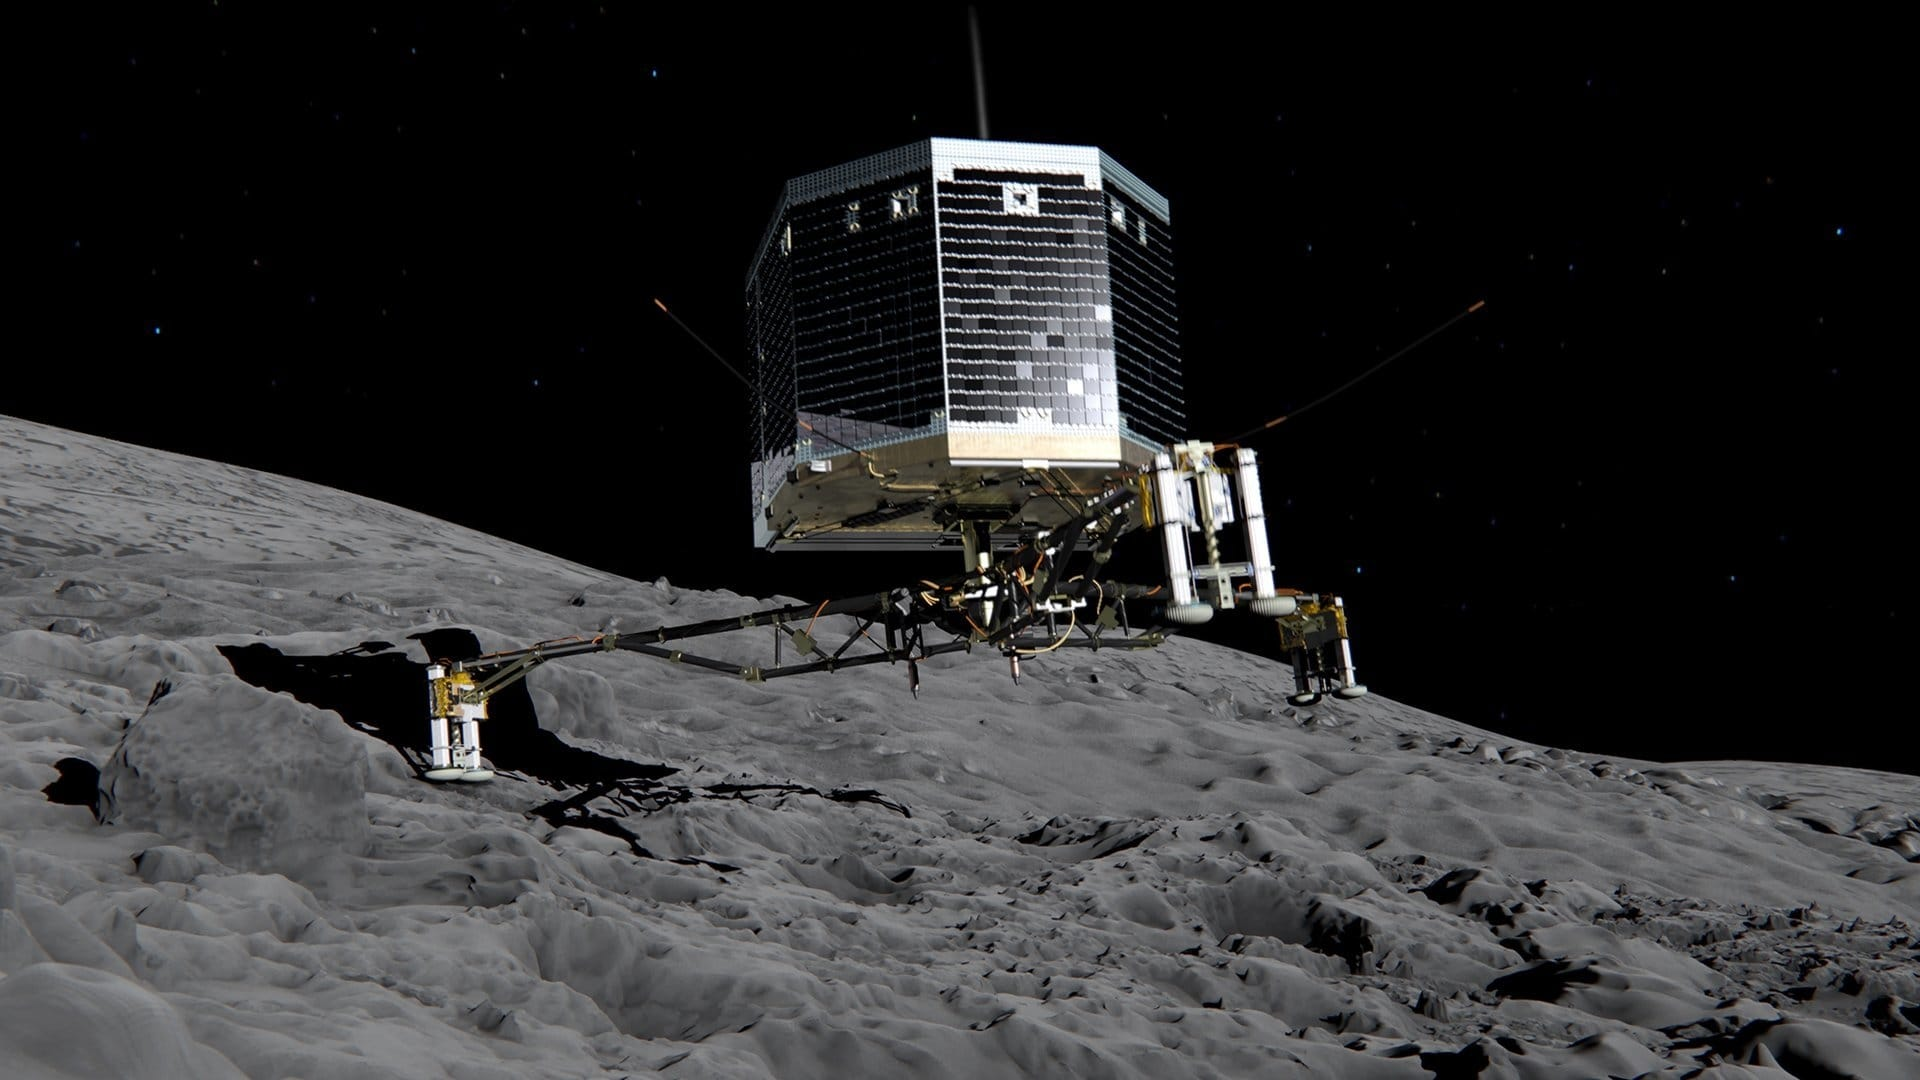 Deep Impact was a NASA space probe launched from Cape Canaveral Air Force Station on January 12 2005 It was designed to study the interior composition of the comet